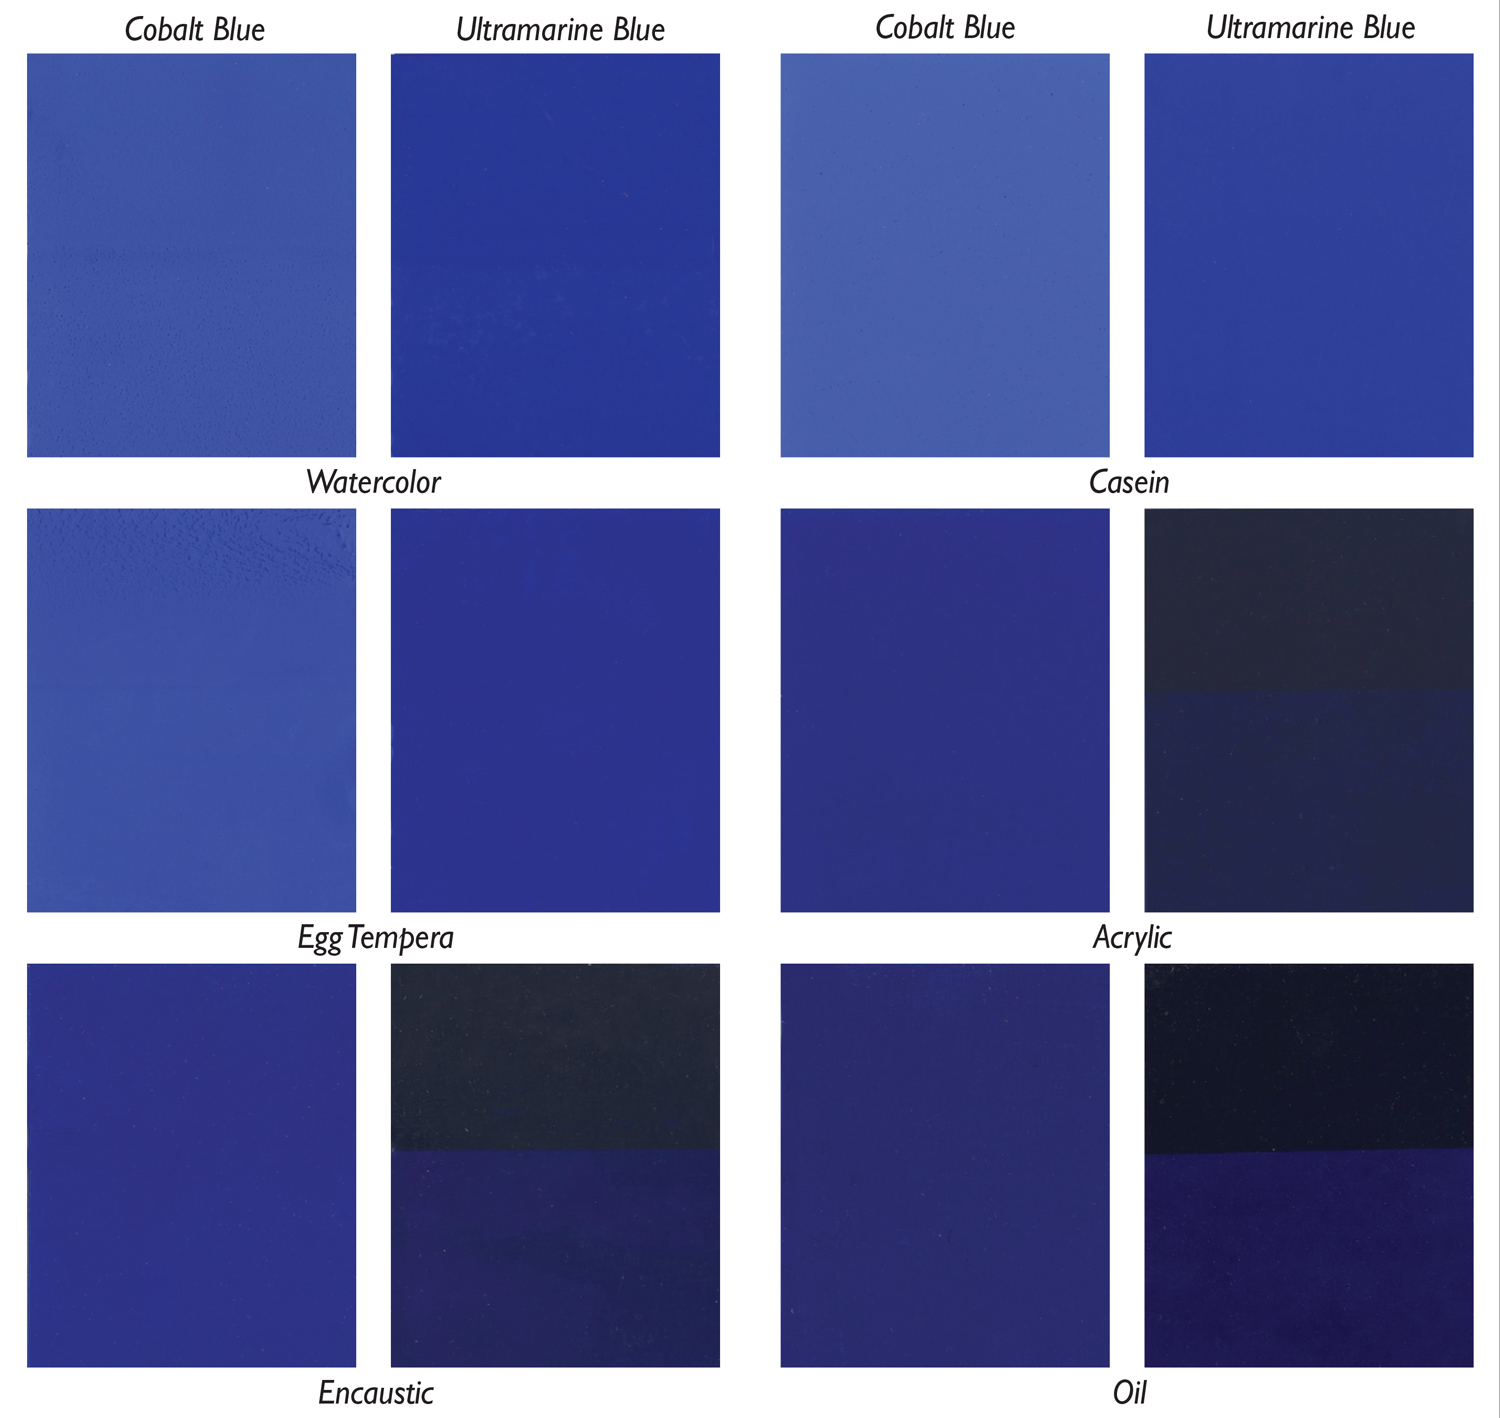 Image 1 Caa Materials Panel Presentation Board Showing Cobalt And Ultramarine Blue In Watercolor